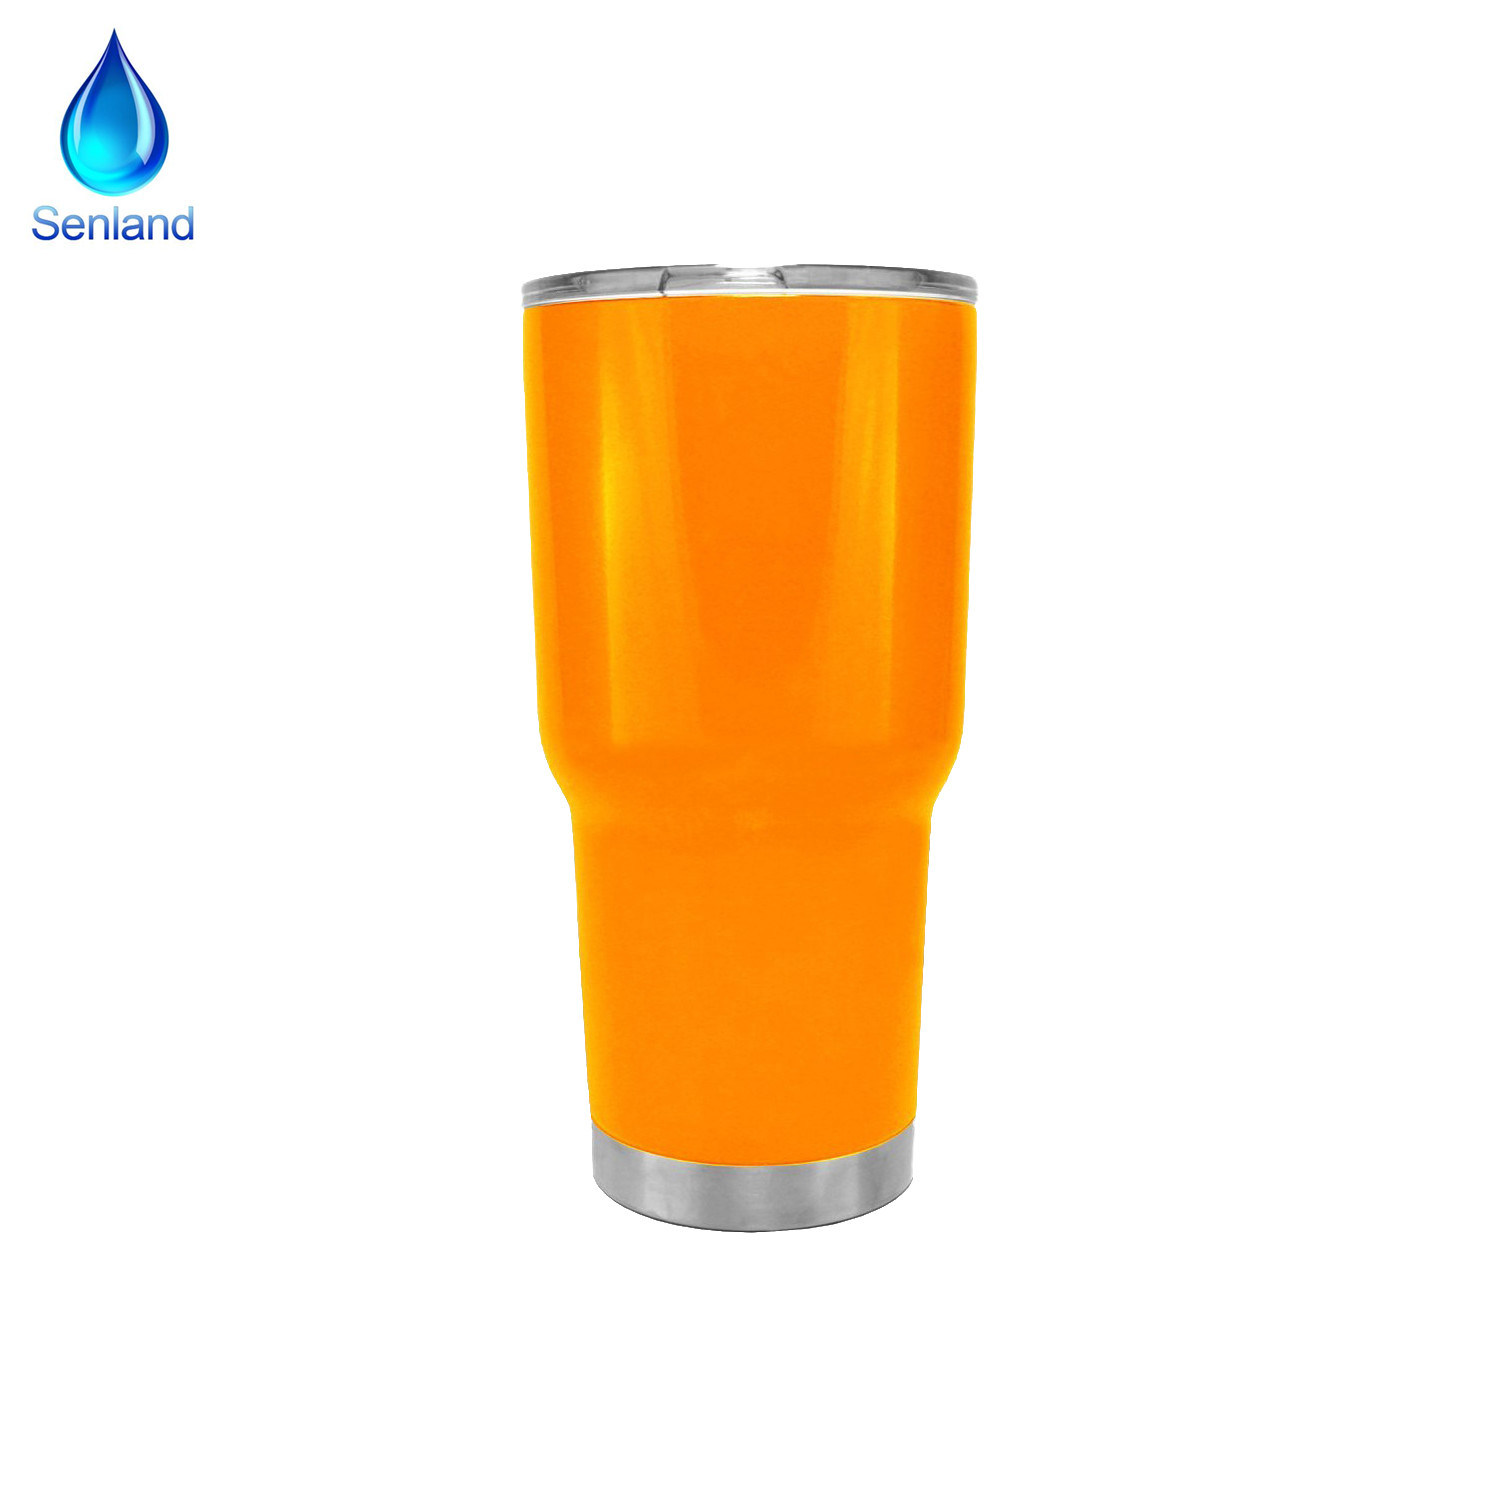 c77e53ad9a9 China 30oz Stainless Steel Tumbler Vacuum Insulated Rambler Coffee Cup  Double Wall Travel Flask Mug with Splash Proof Lid (SL-12) - China Water  Bottle, ...